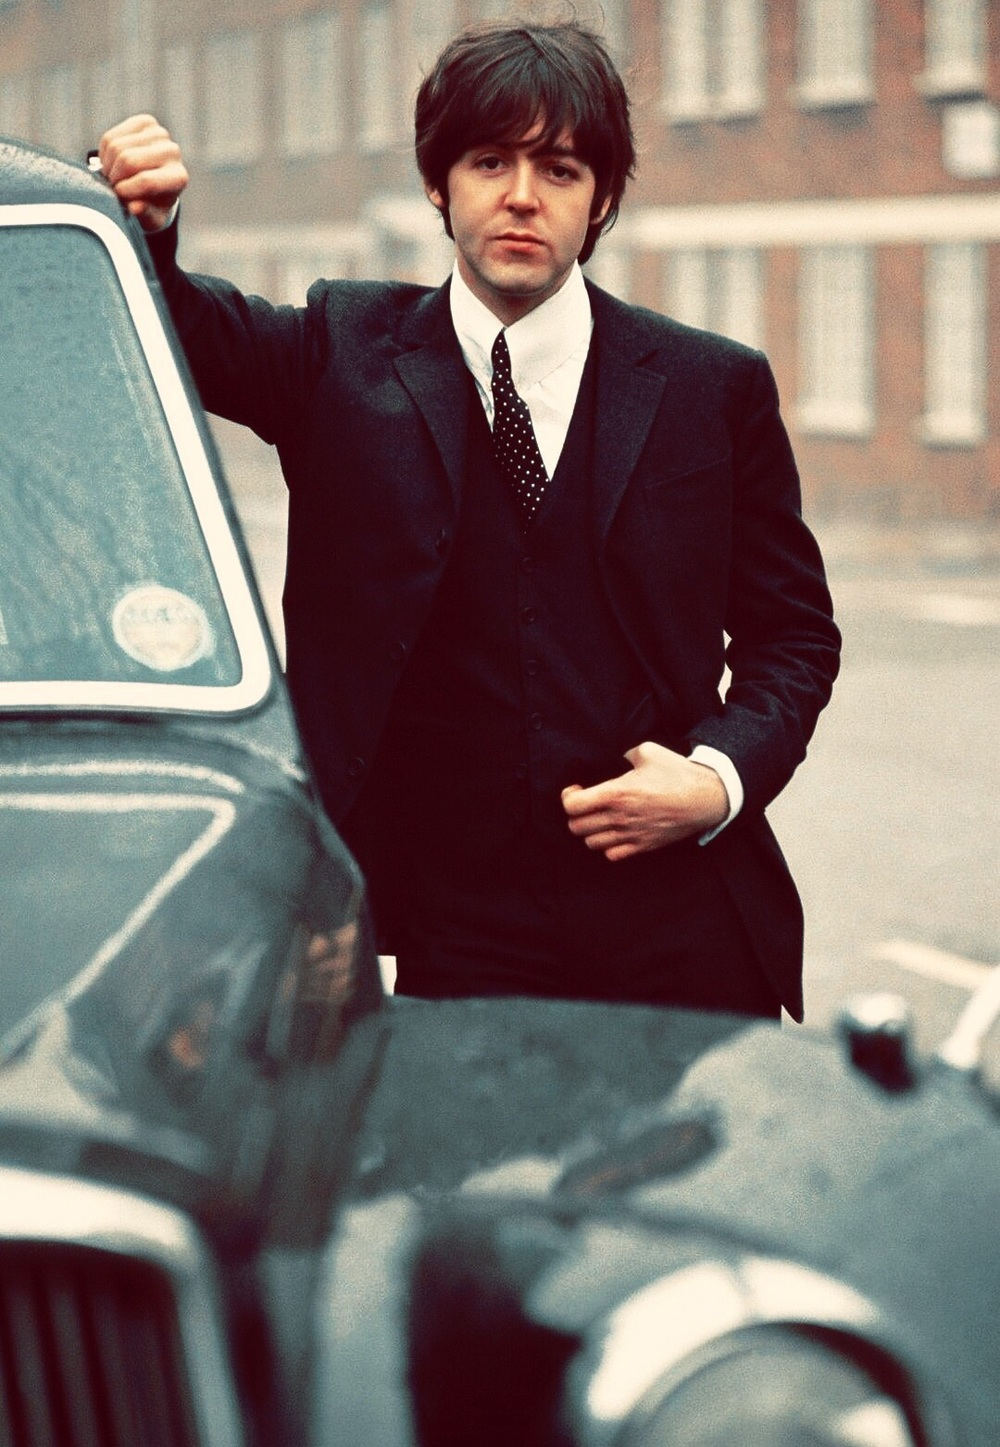 Paul McCartney circa 1965.